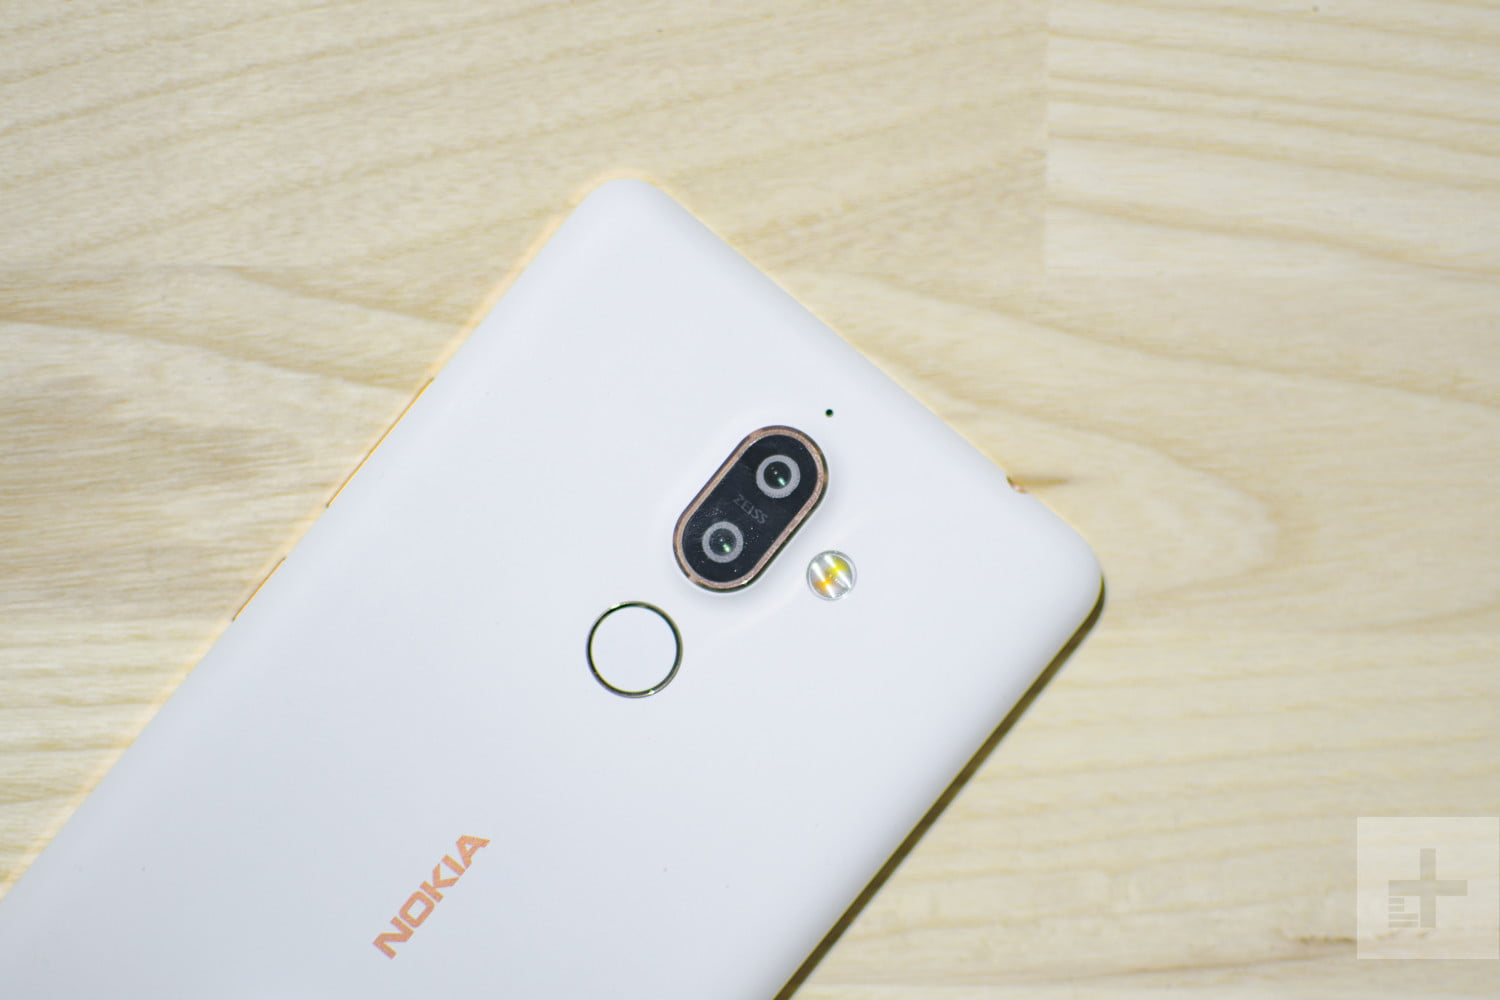 reputable site 2a09f 2e098 The Best Nokia 7 Plus Cases to Keep Your Noteworthy Nokia ...